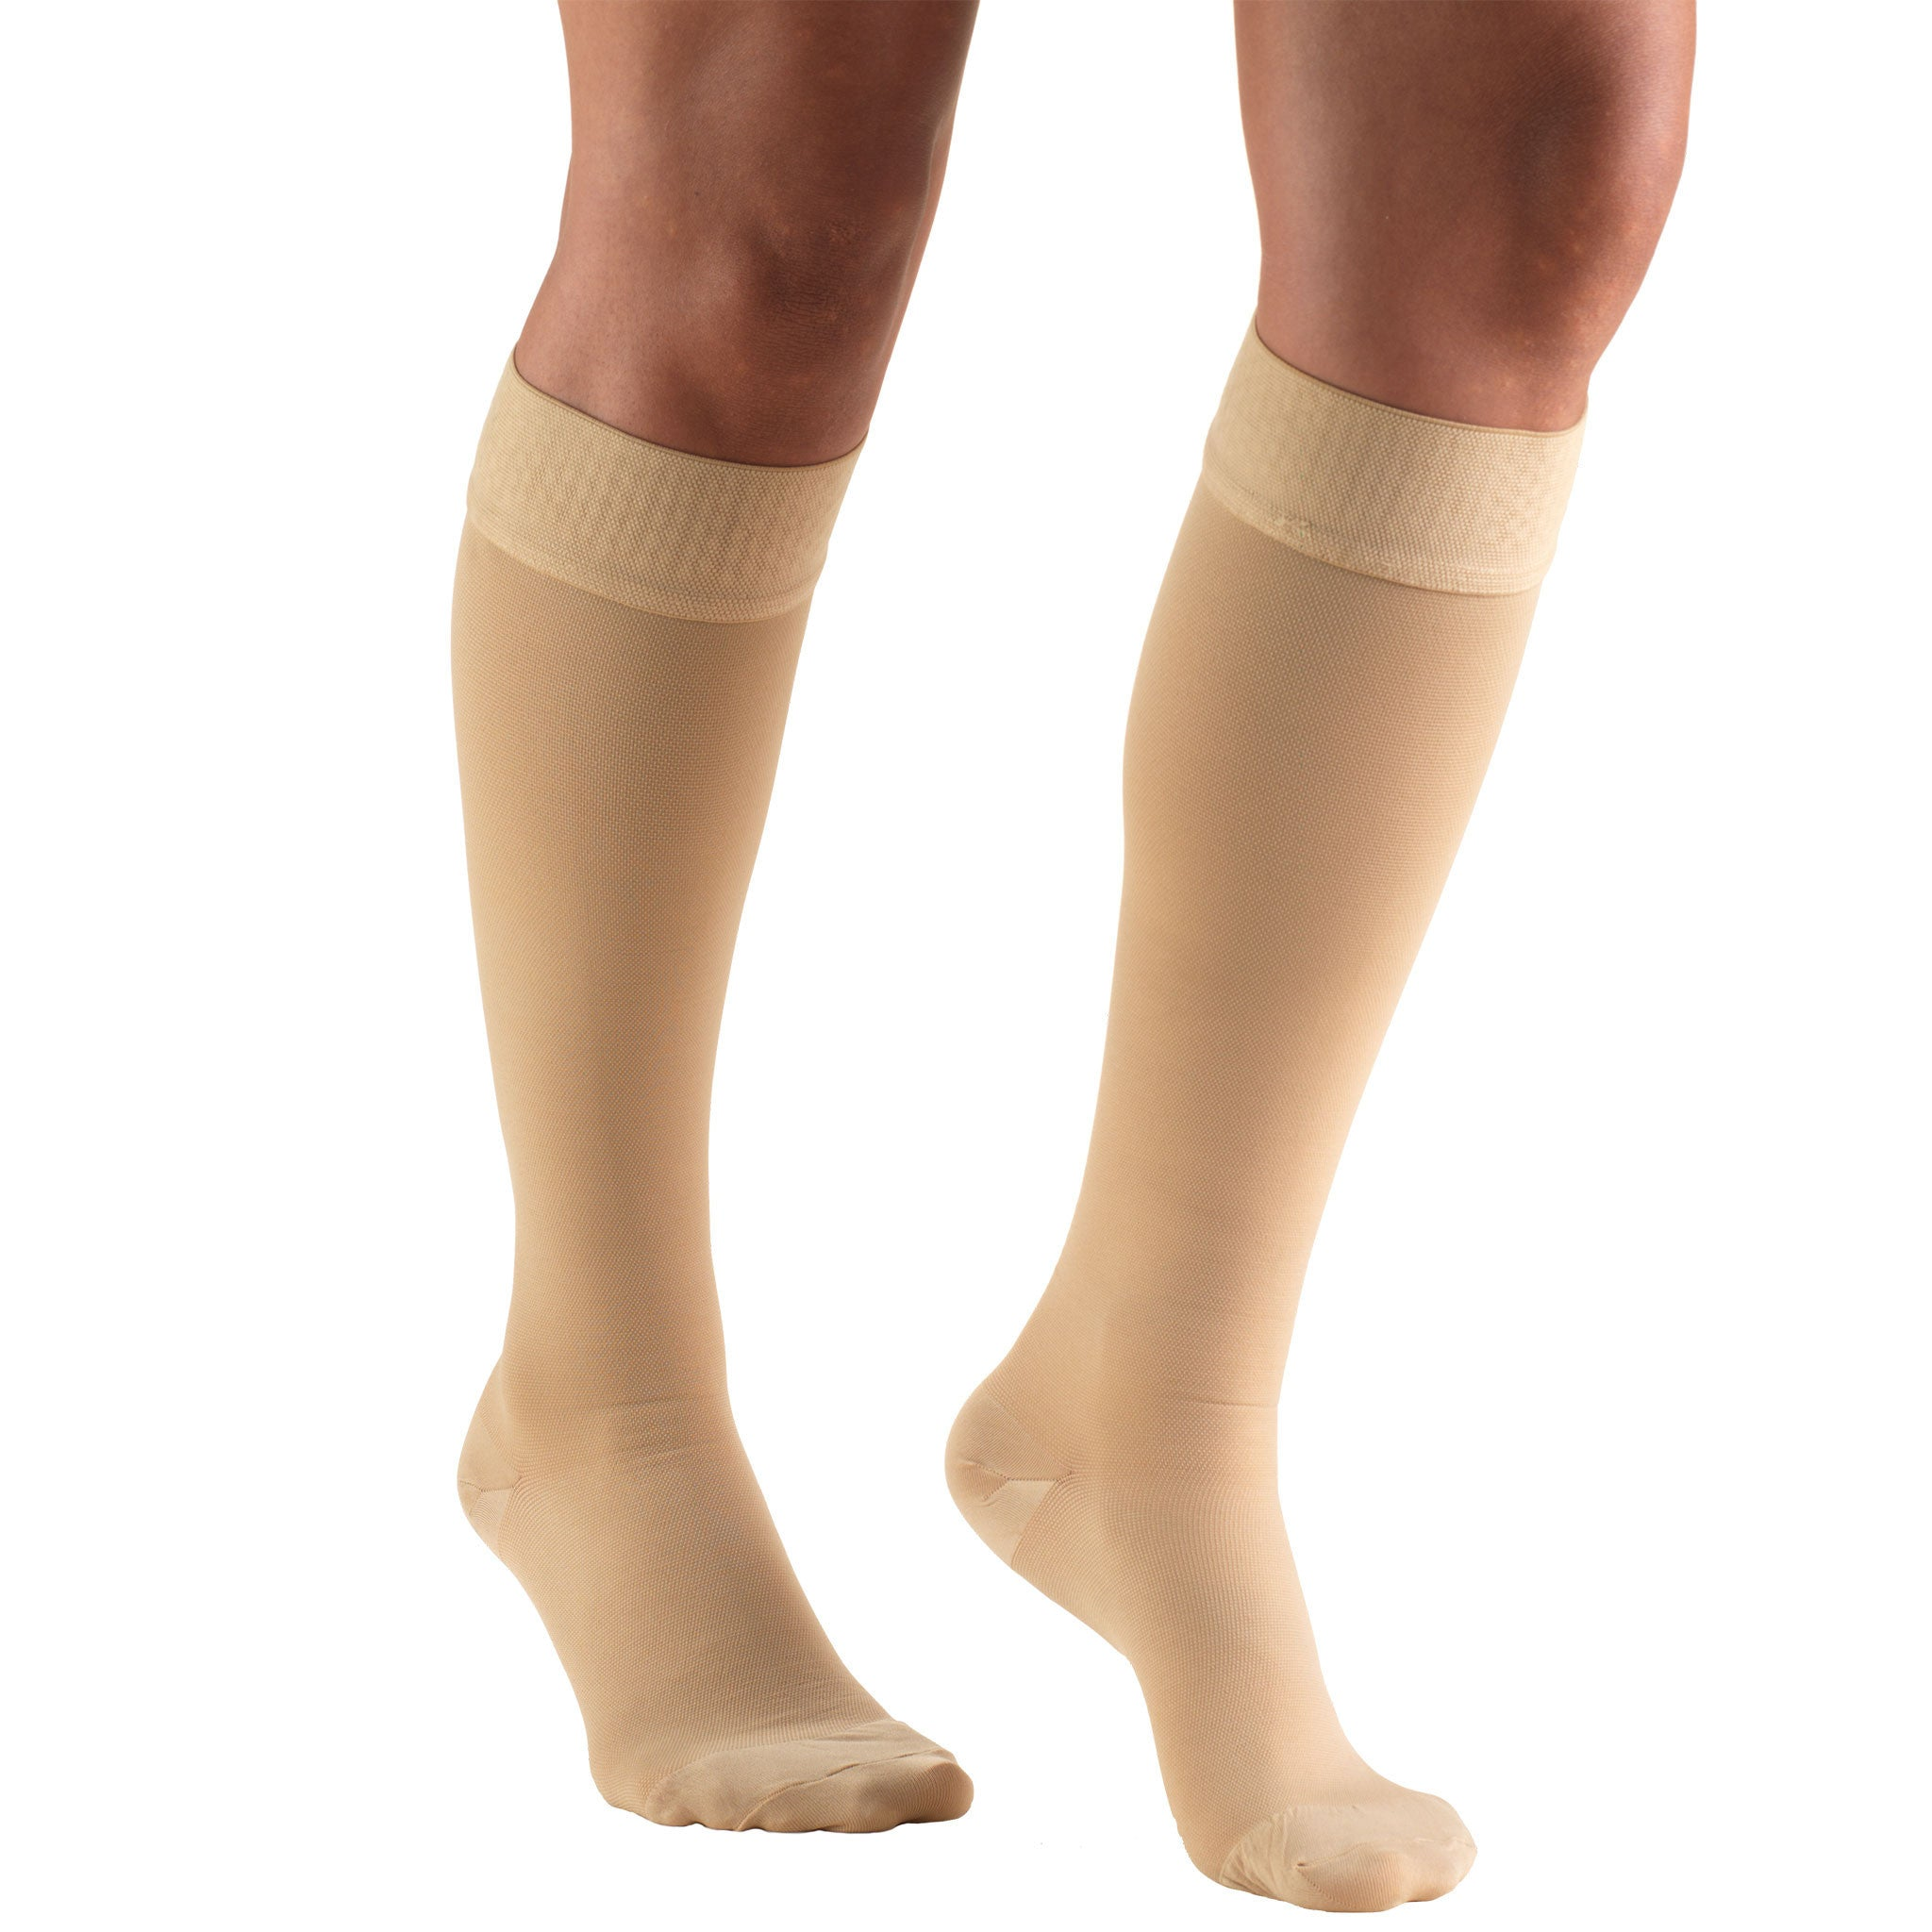 191d4ae5e8e Truform 8864 Below Knee Dot-Top 20-30 Compression Beige –  CompressionStocking.co